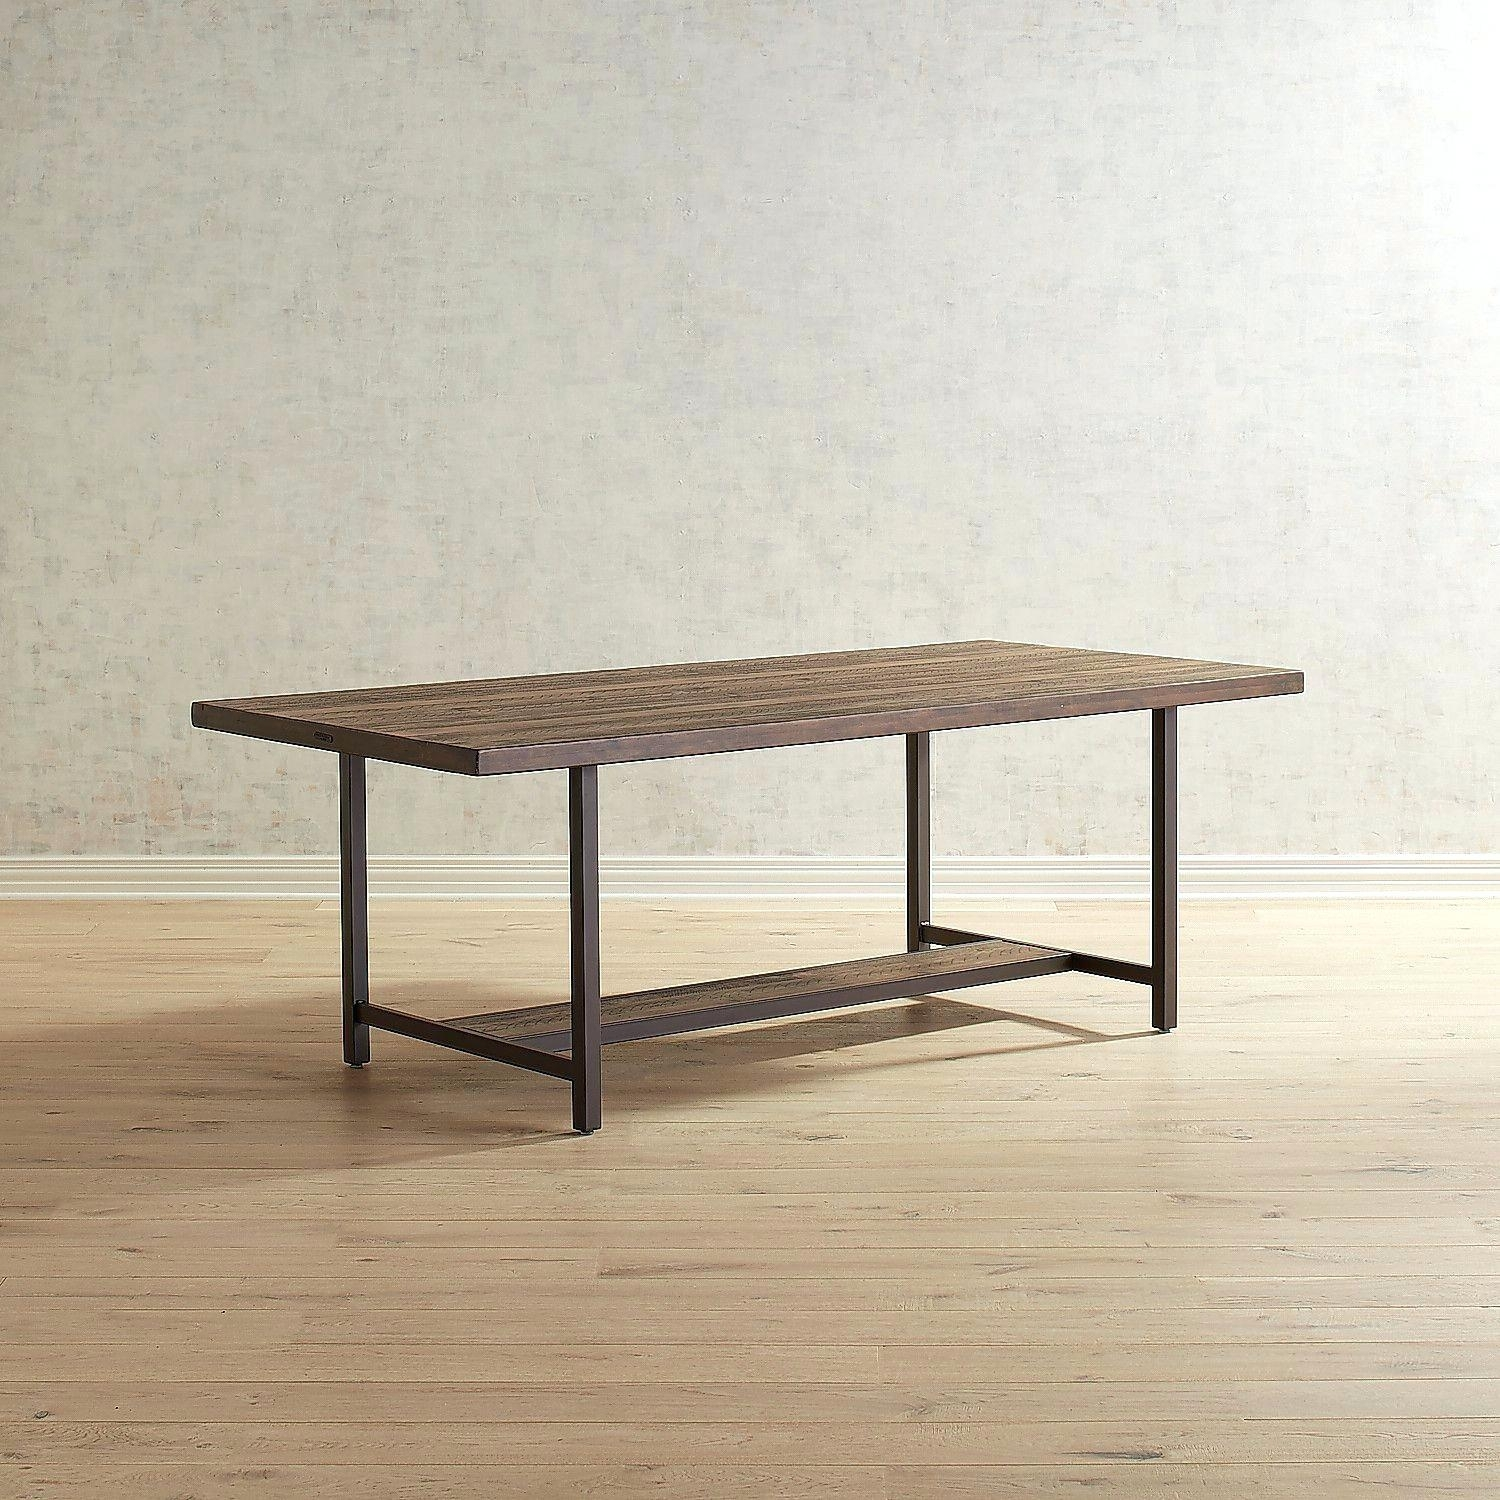 Magnolia Home Dining Table Industrial – Battenhall Regarding Most Up To Date Magnolia Home Shop Floor Dining Tables With Iron Trestle (Image 11 of 20)